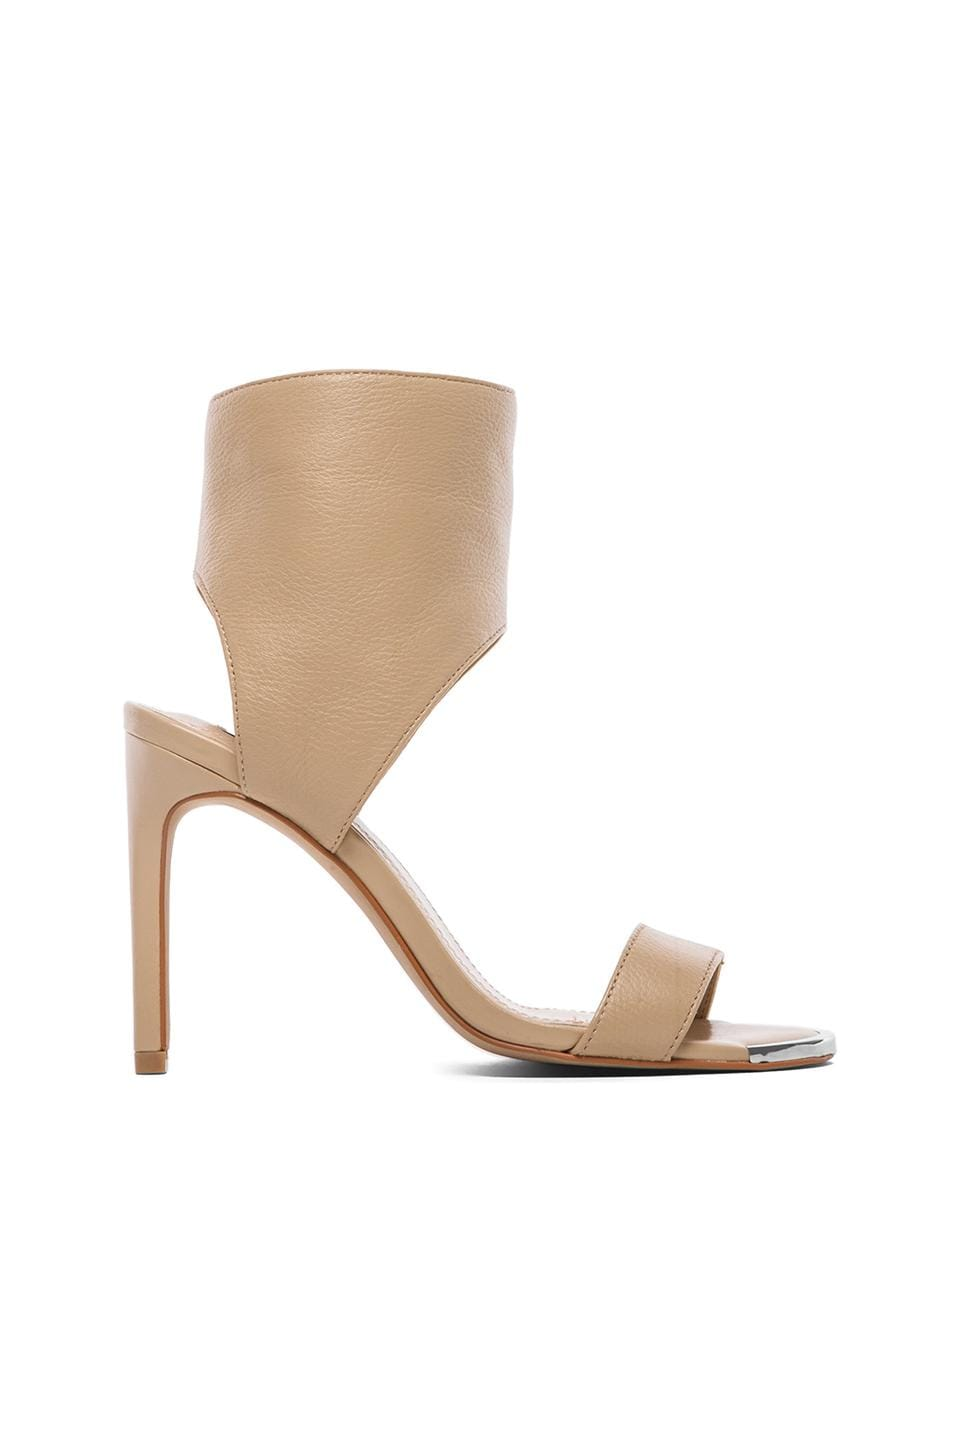 Steve Madden Dallas Heel in Nude